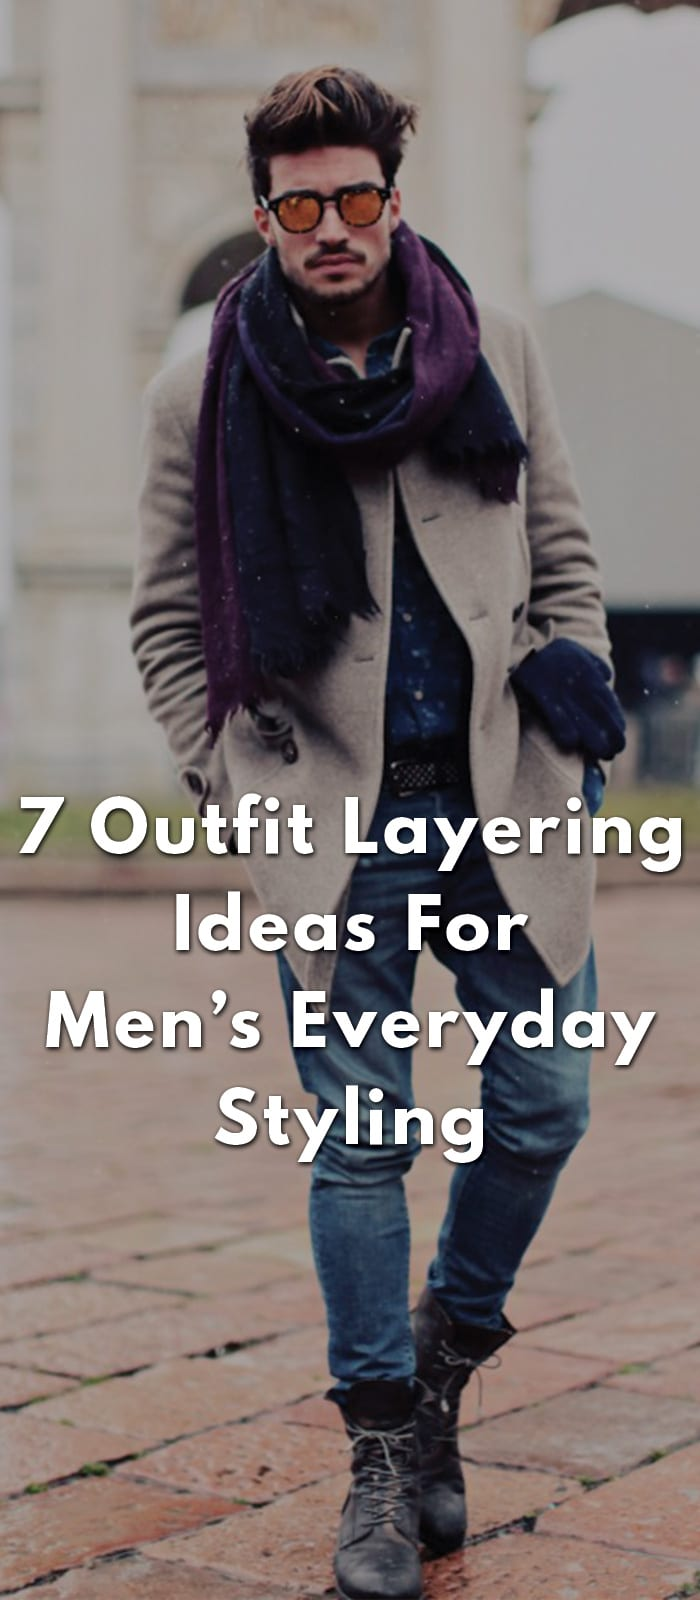 7-Outfit-Layering-Ideas-For-Men's-Everyday-Styling